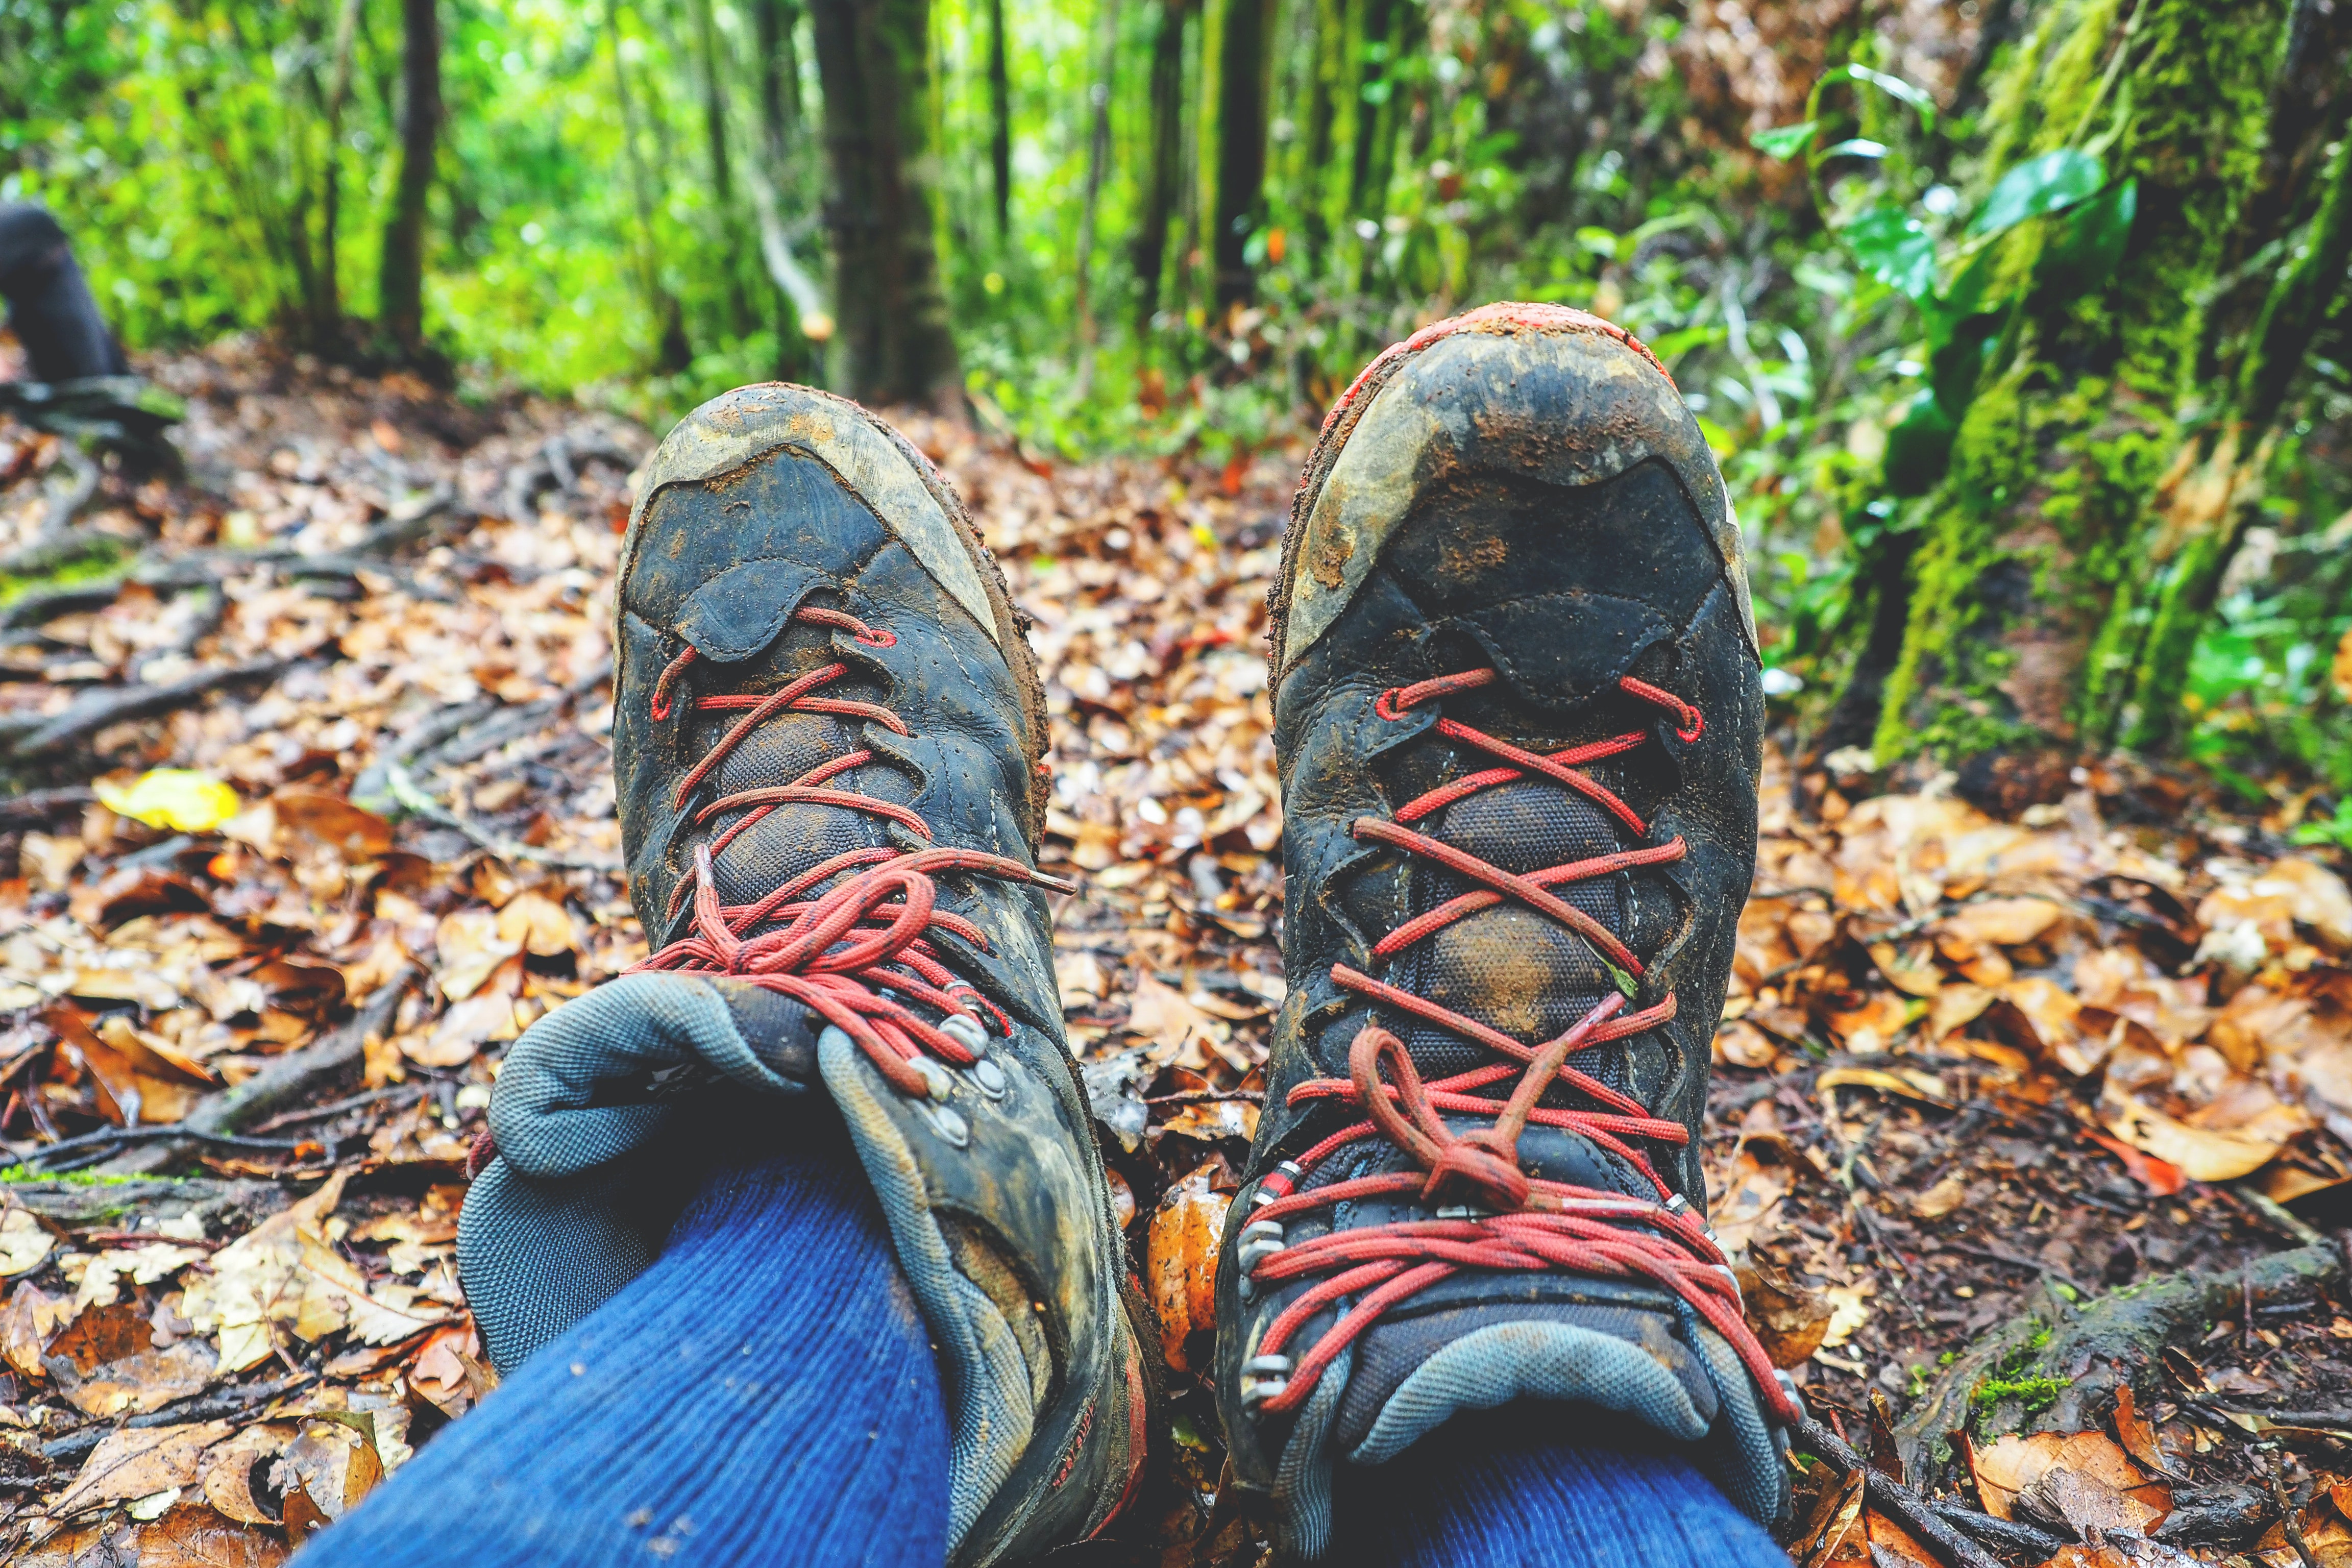 person taking photo of his shoes while in the forest